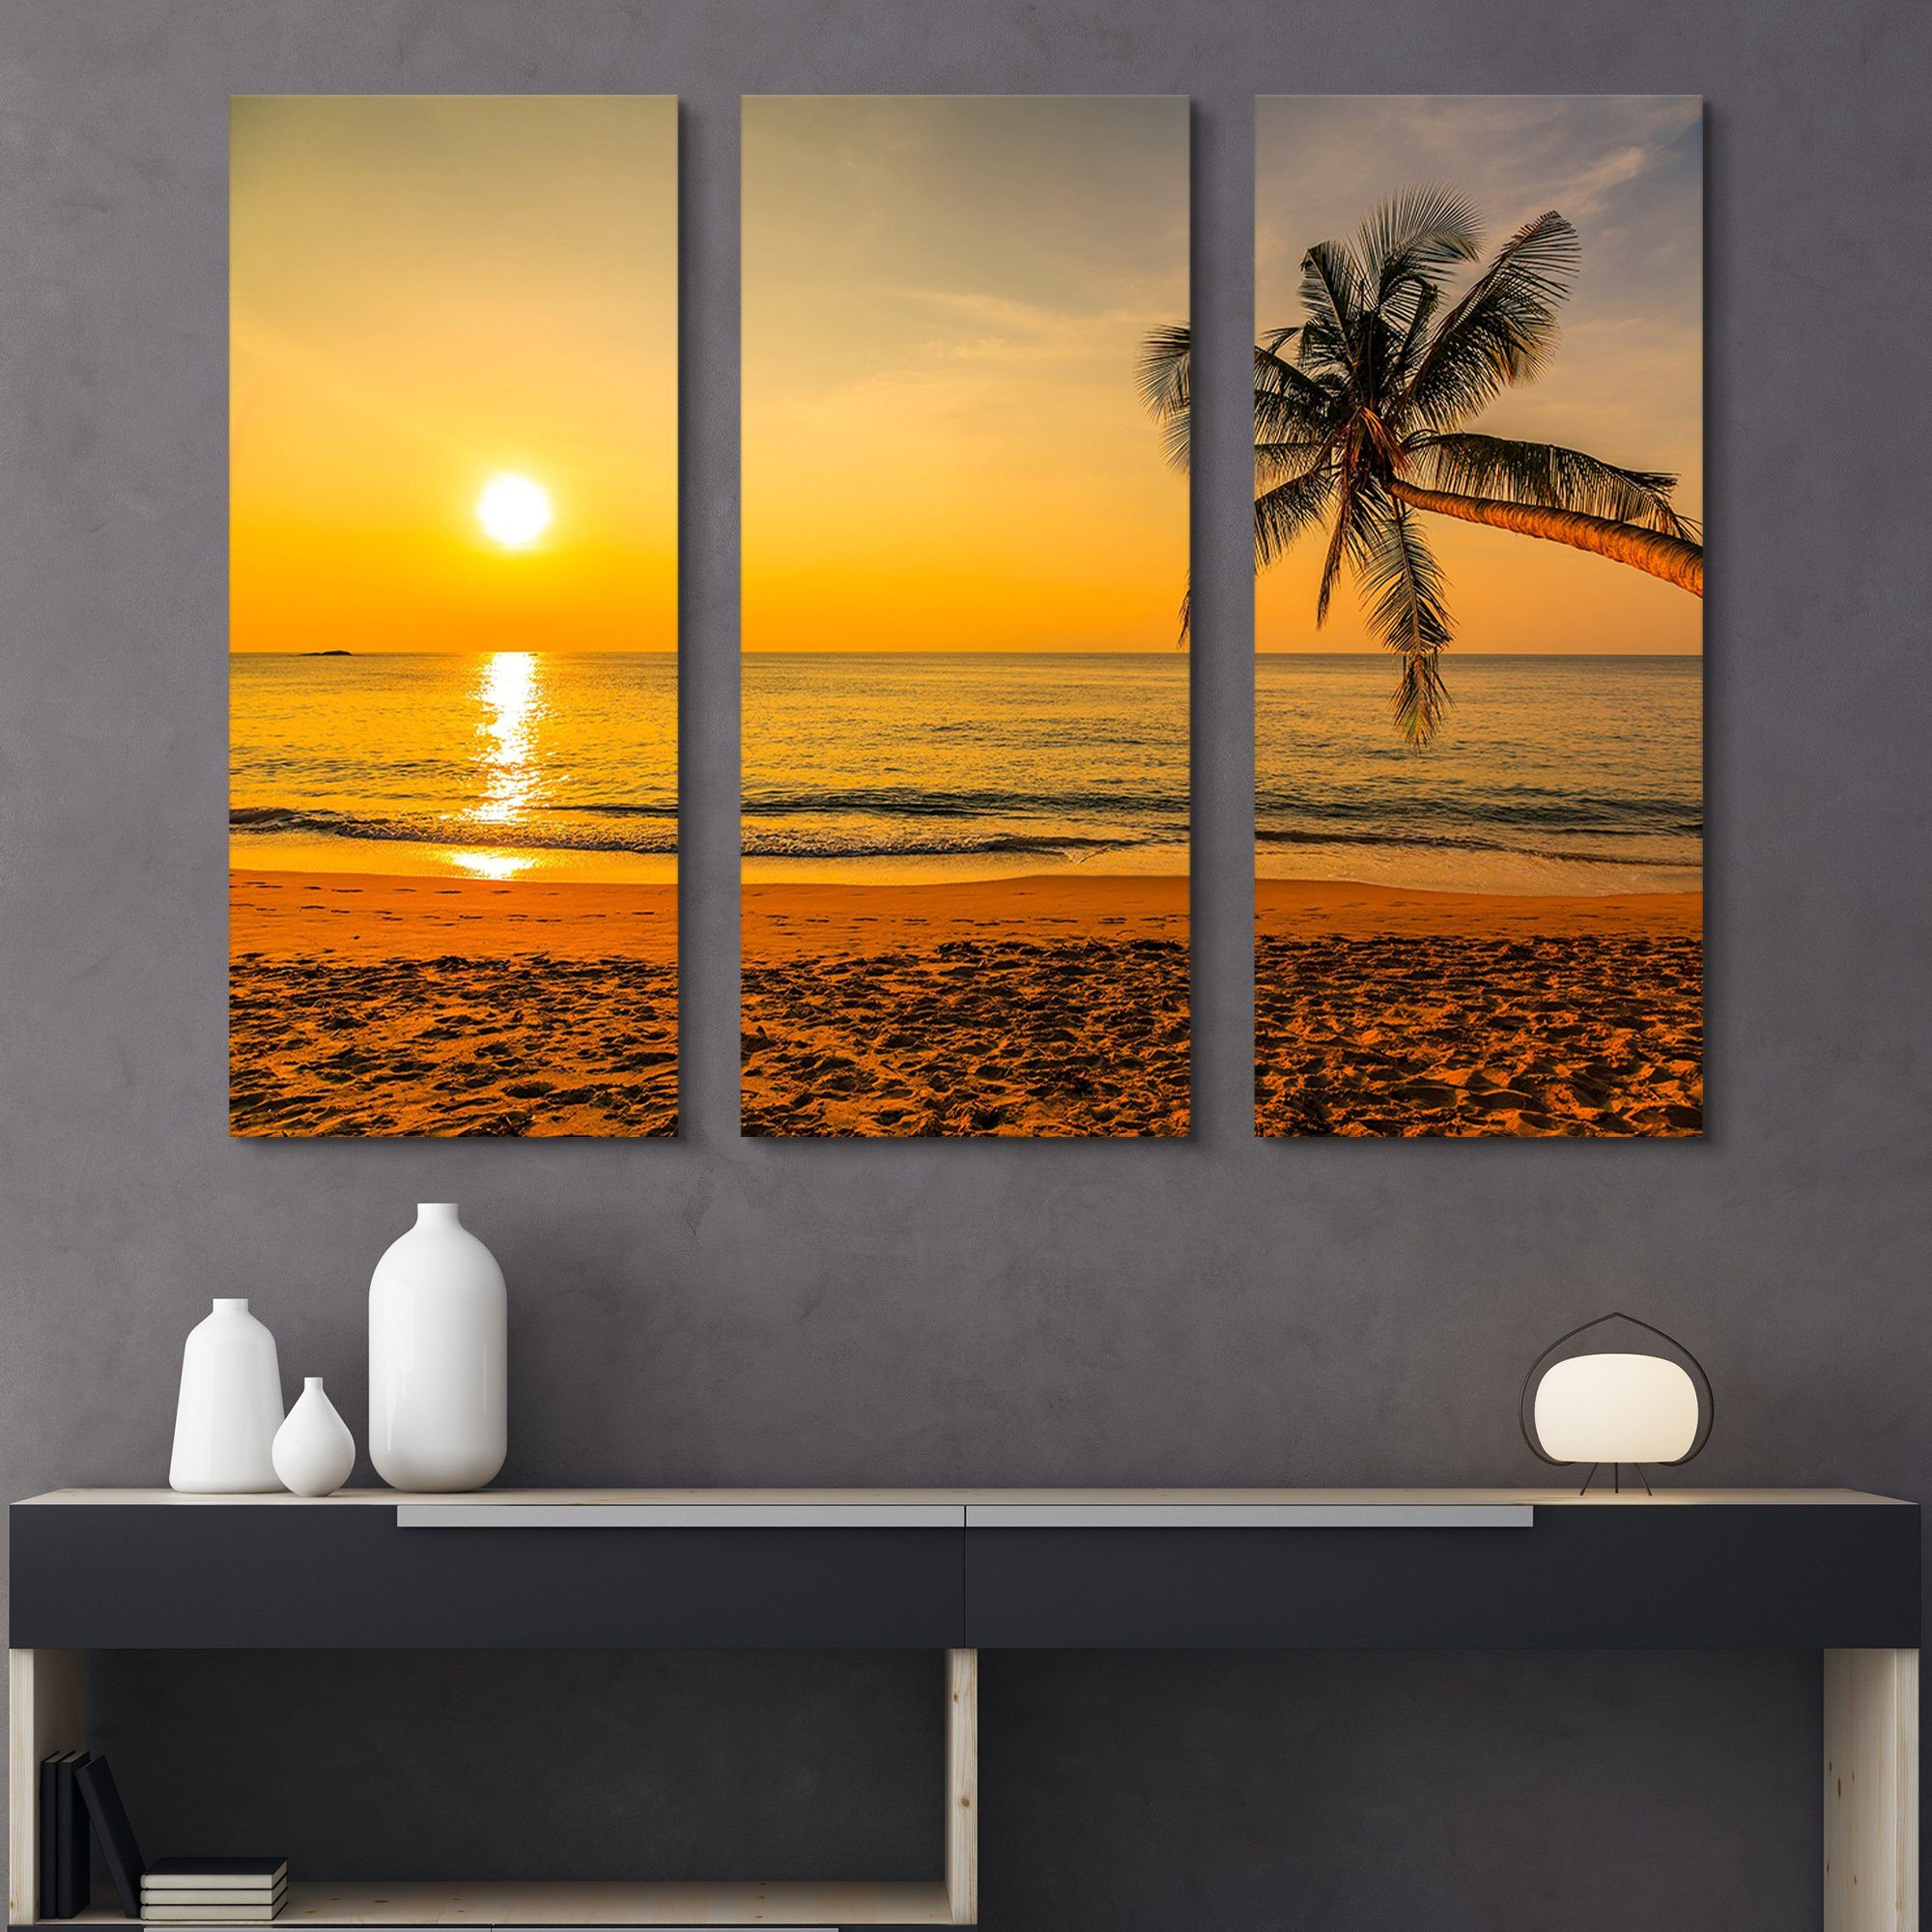 3 piece Sunset by the Beach wall art